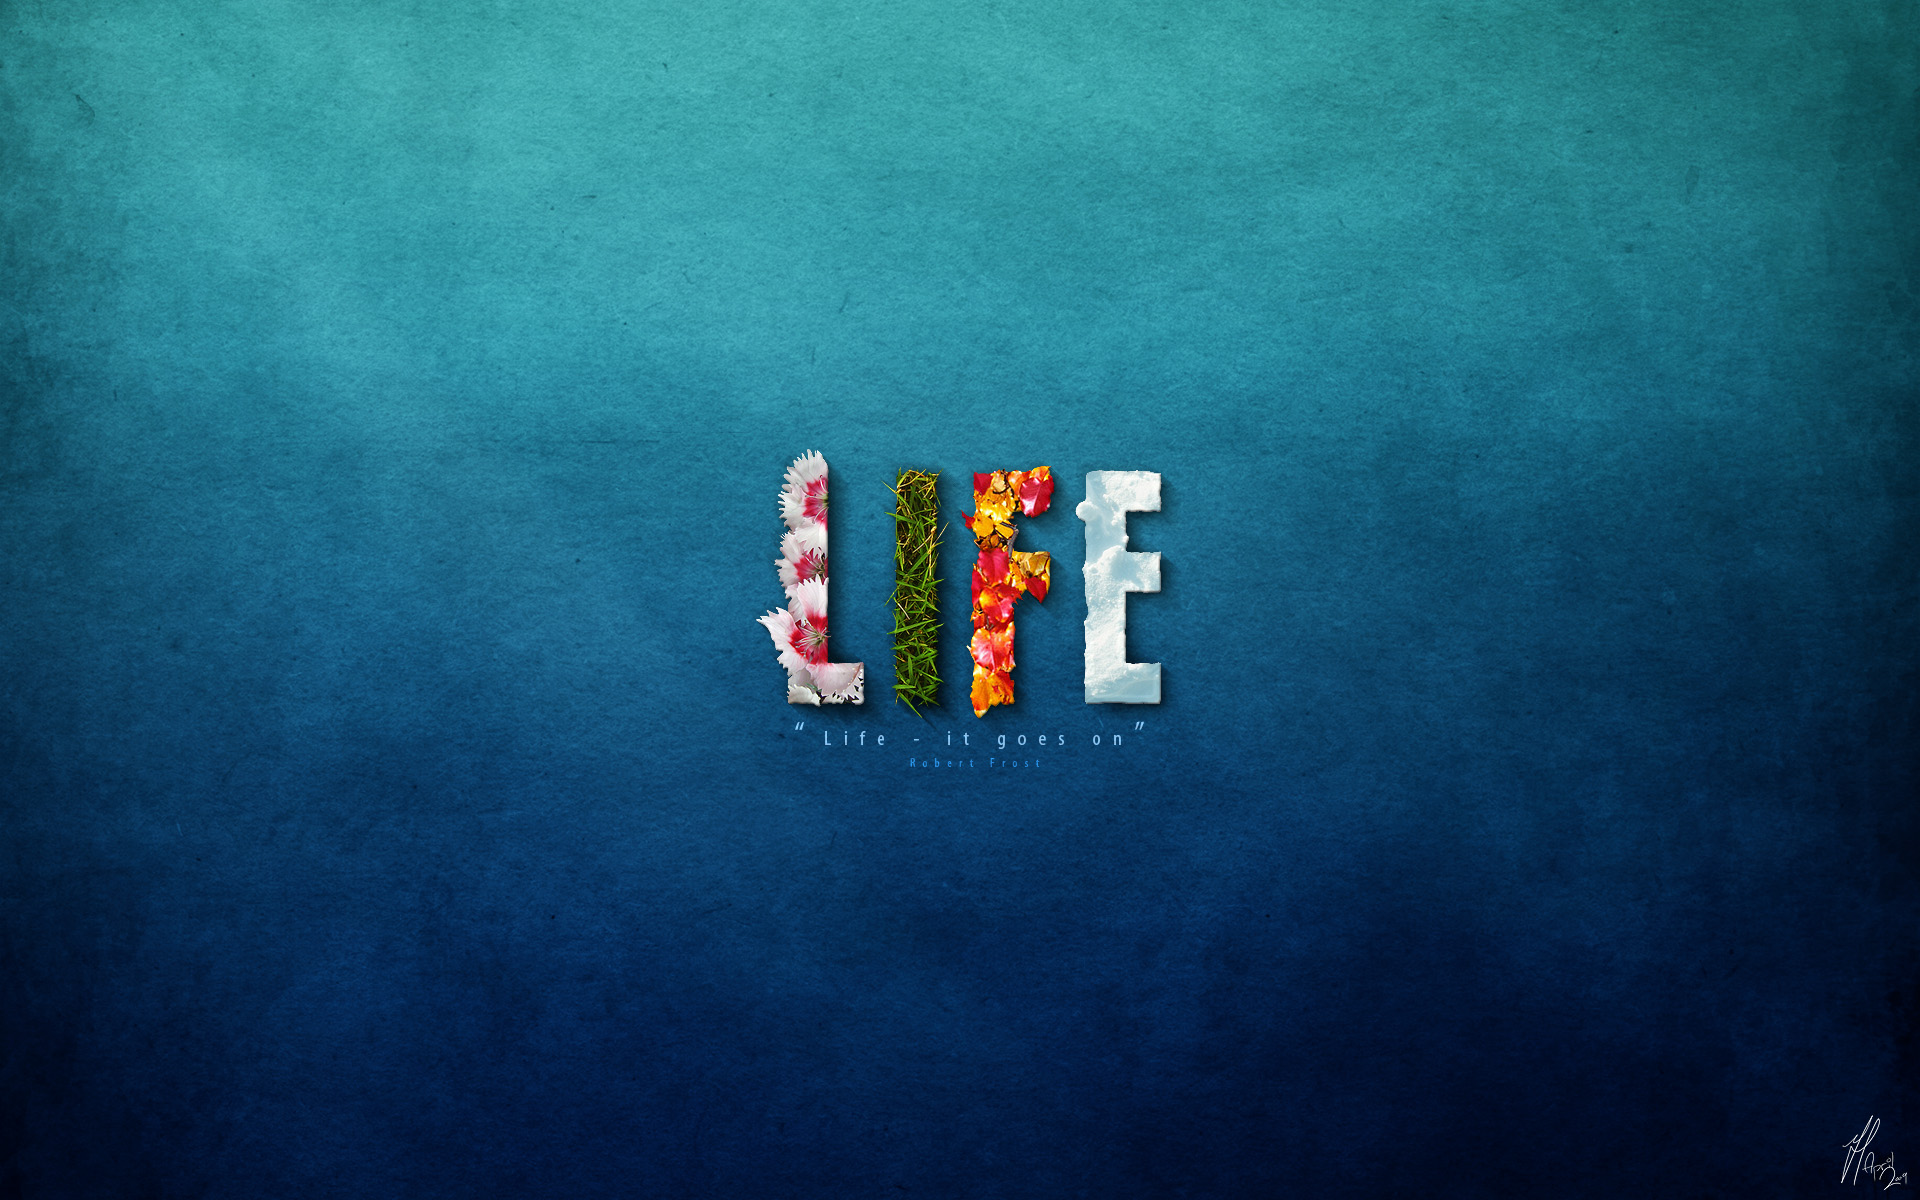 life wallpapers